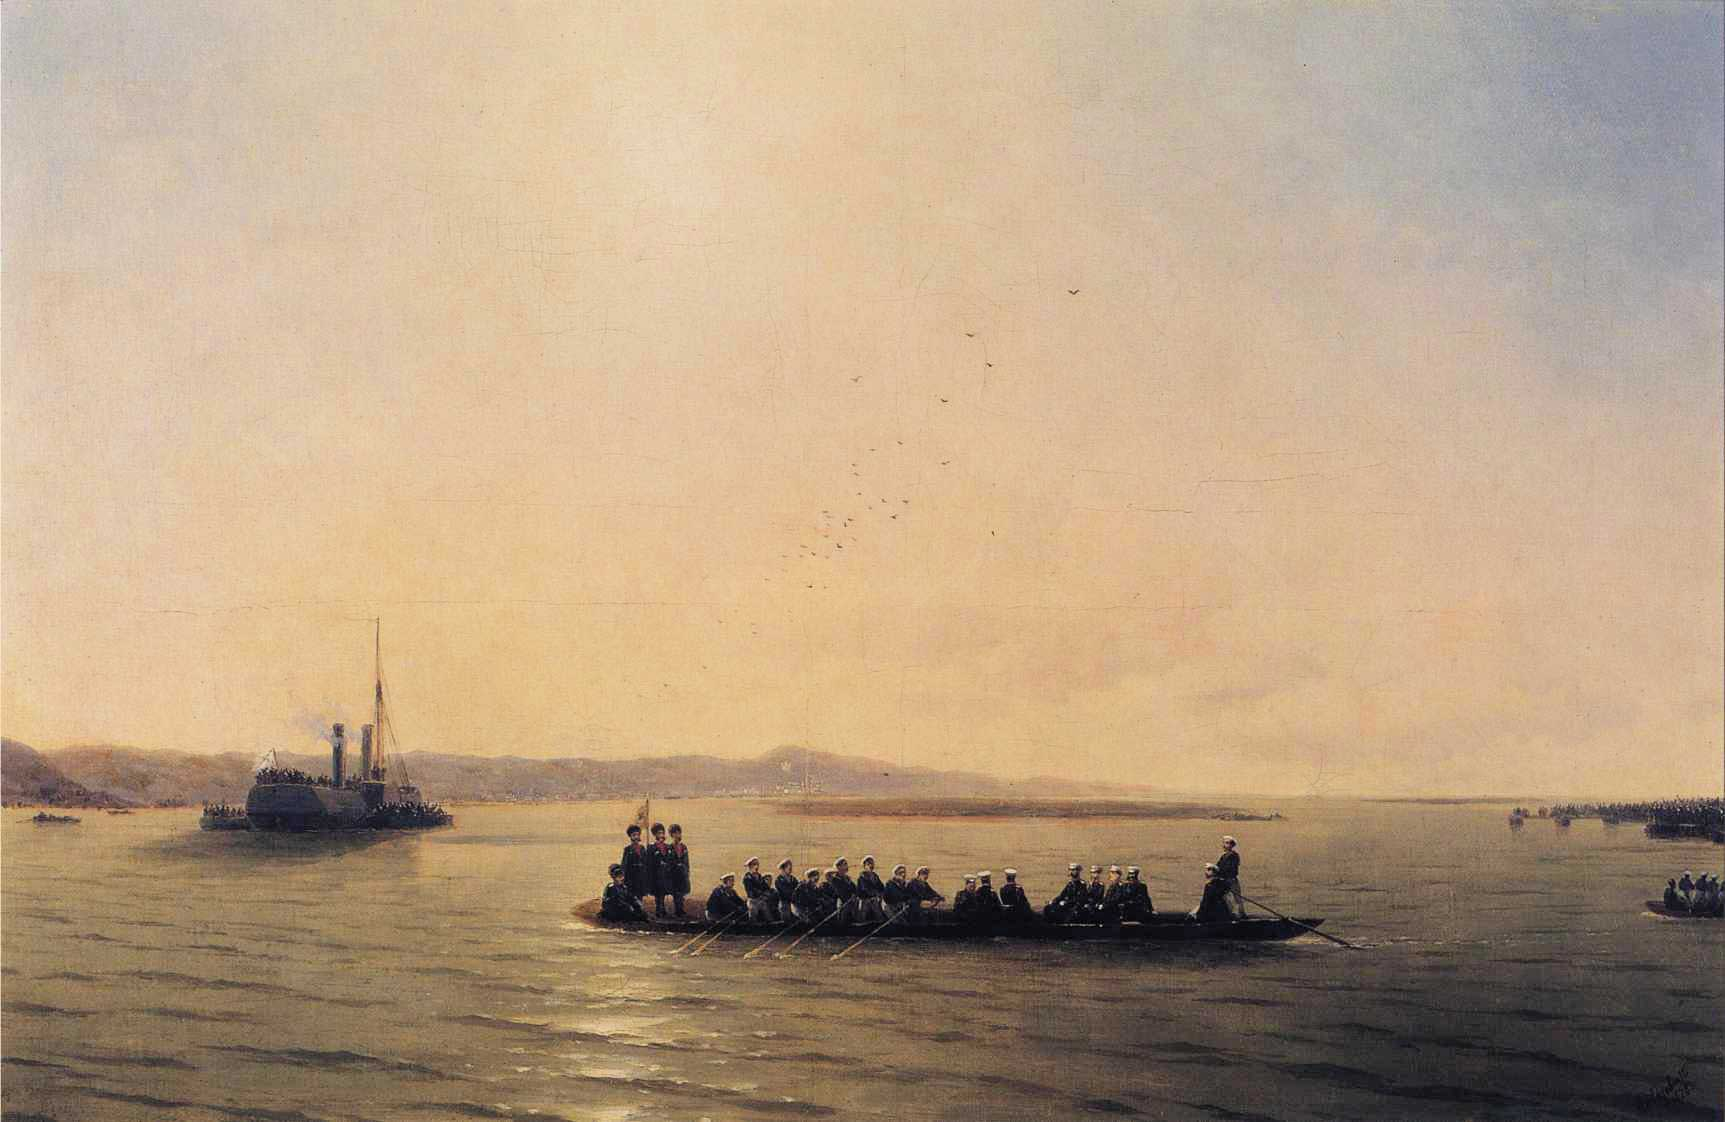 Alexander II Crossing the Danube :: Ivan Constantinovich Aivazovsky - Sea landscapes with ships ôîòî